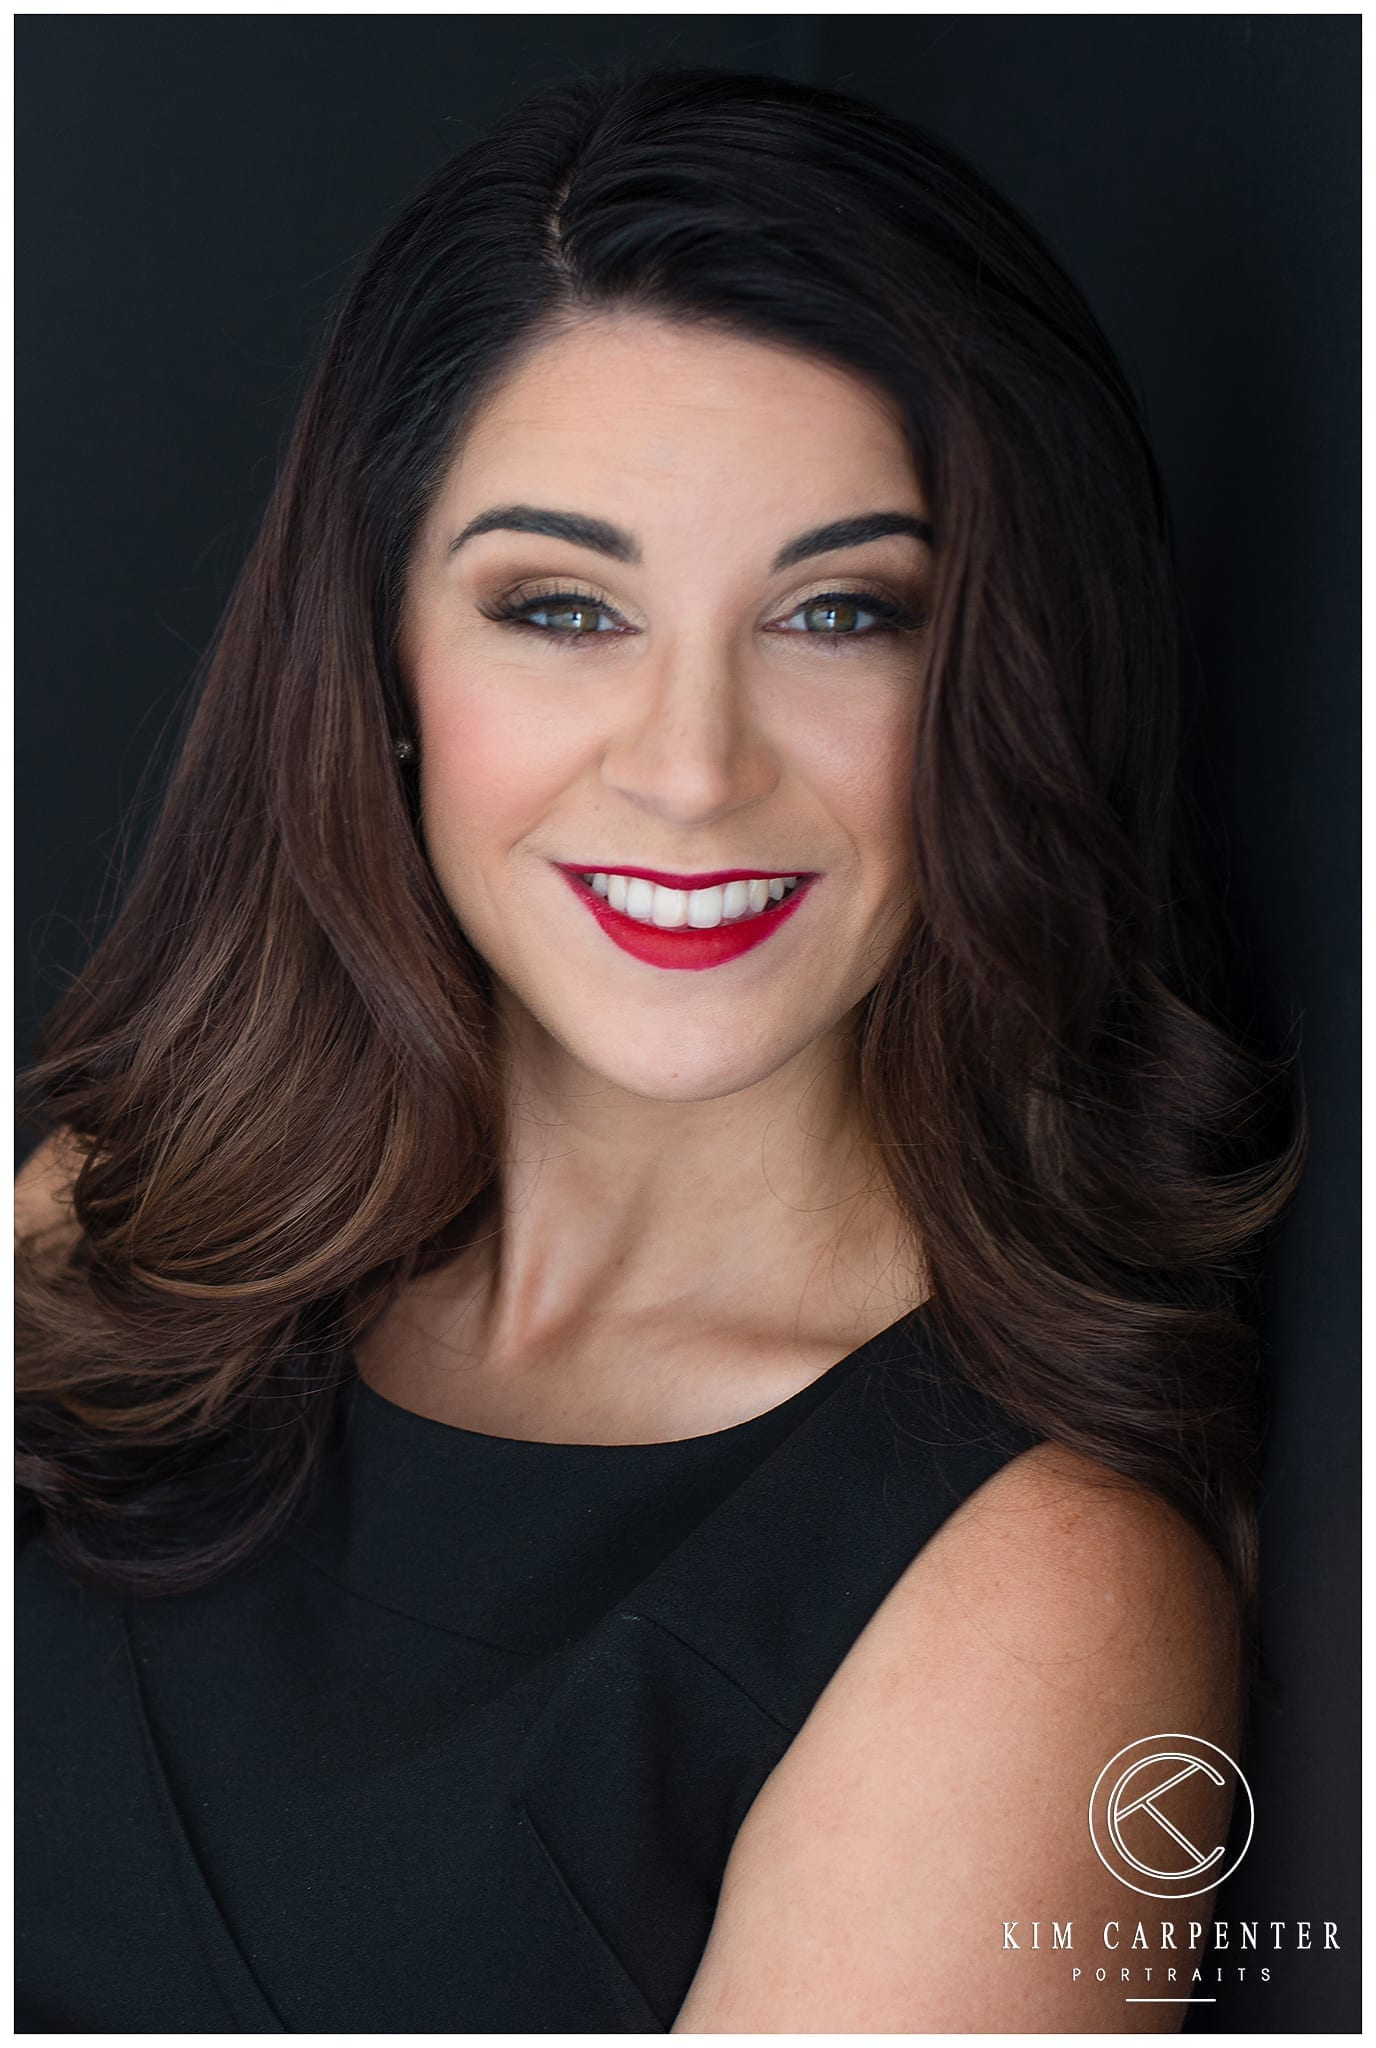 Young lady with red lipstick and white teeth. Lakeland Photographer, professional headshots